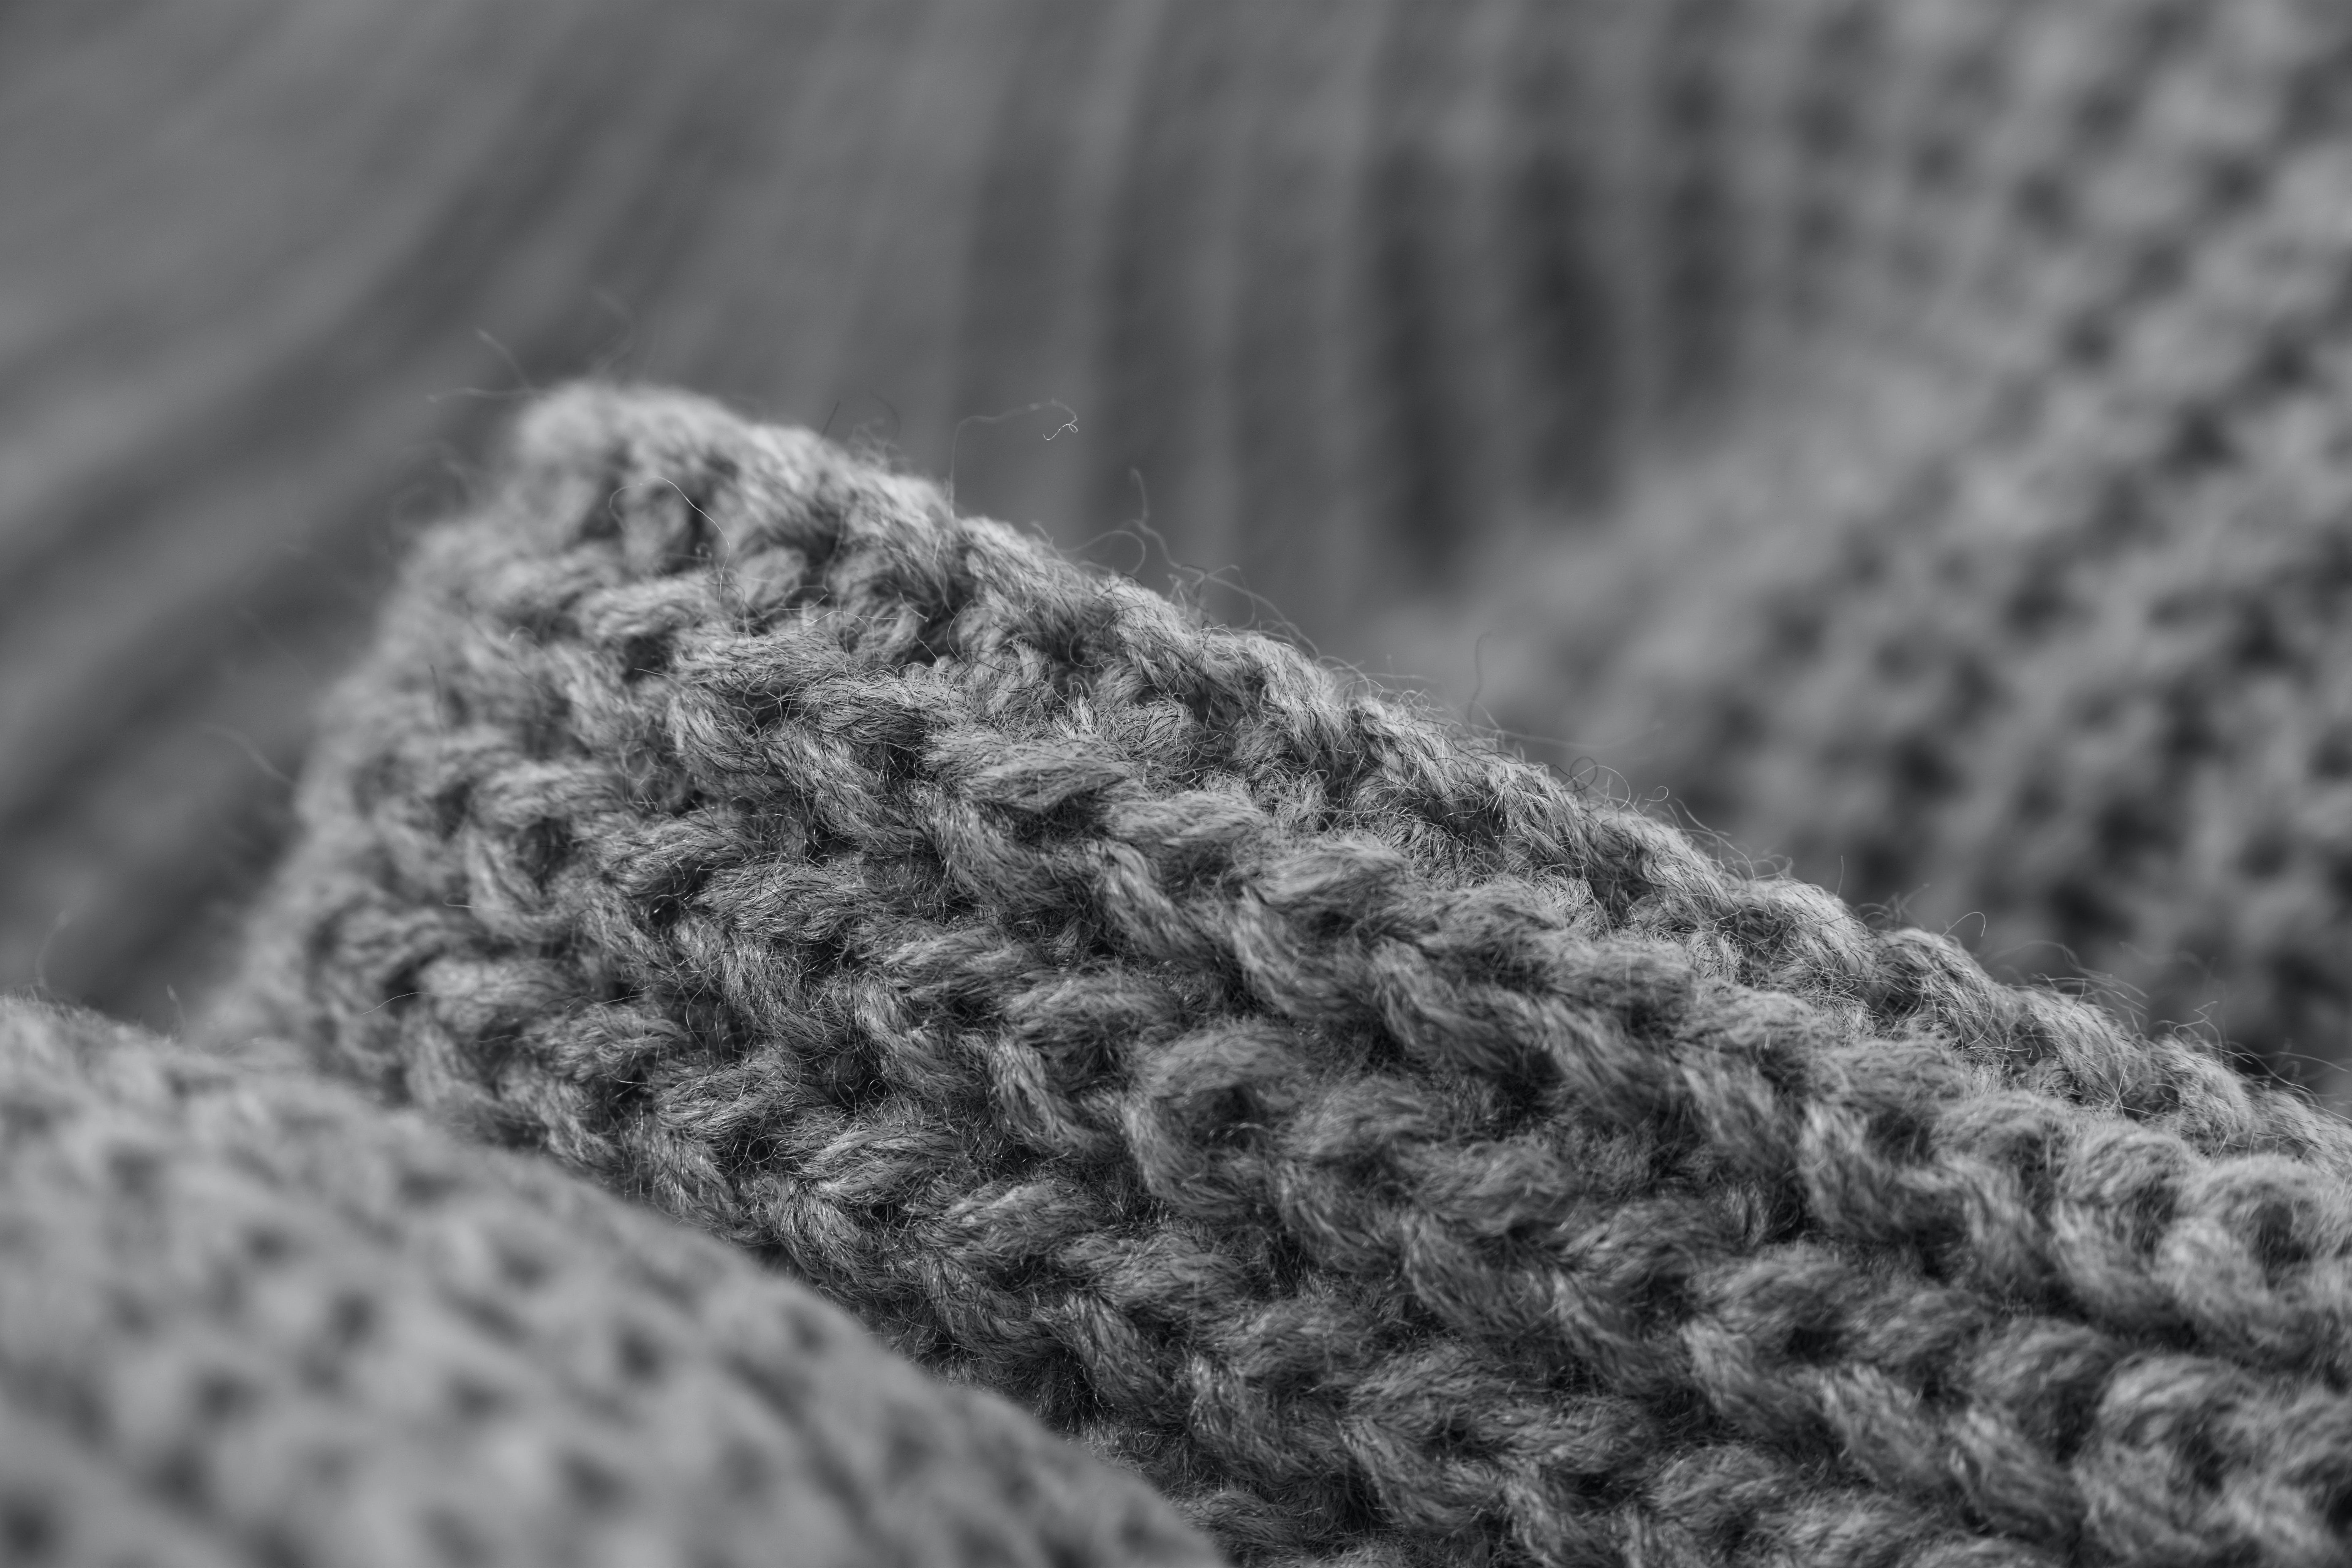 Free stock photo of cold black and white pattern texture